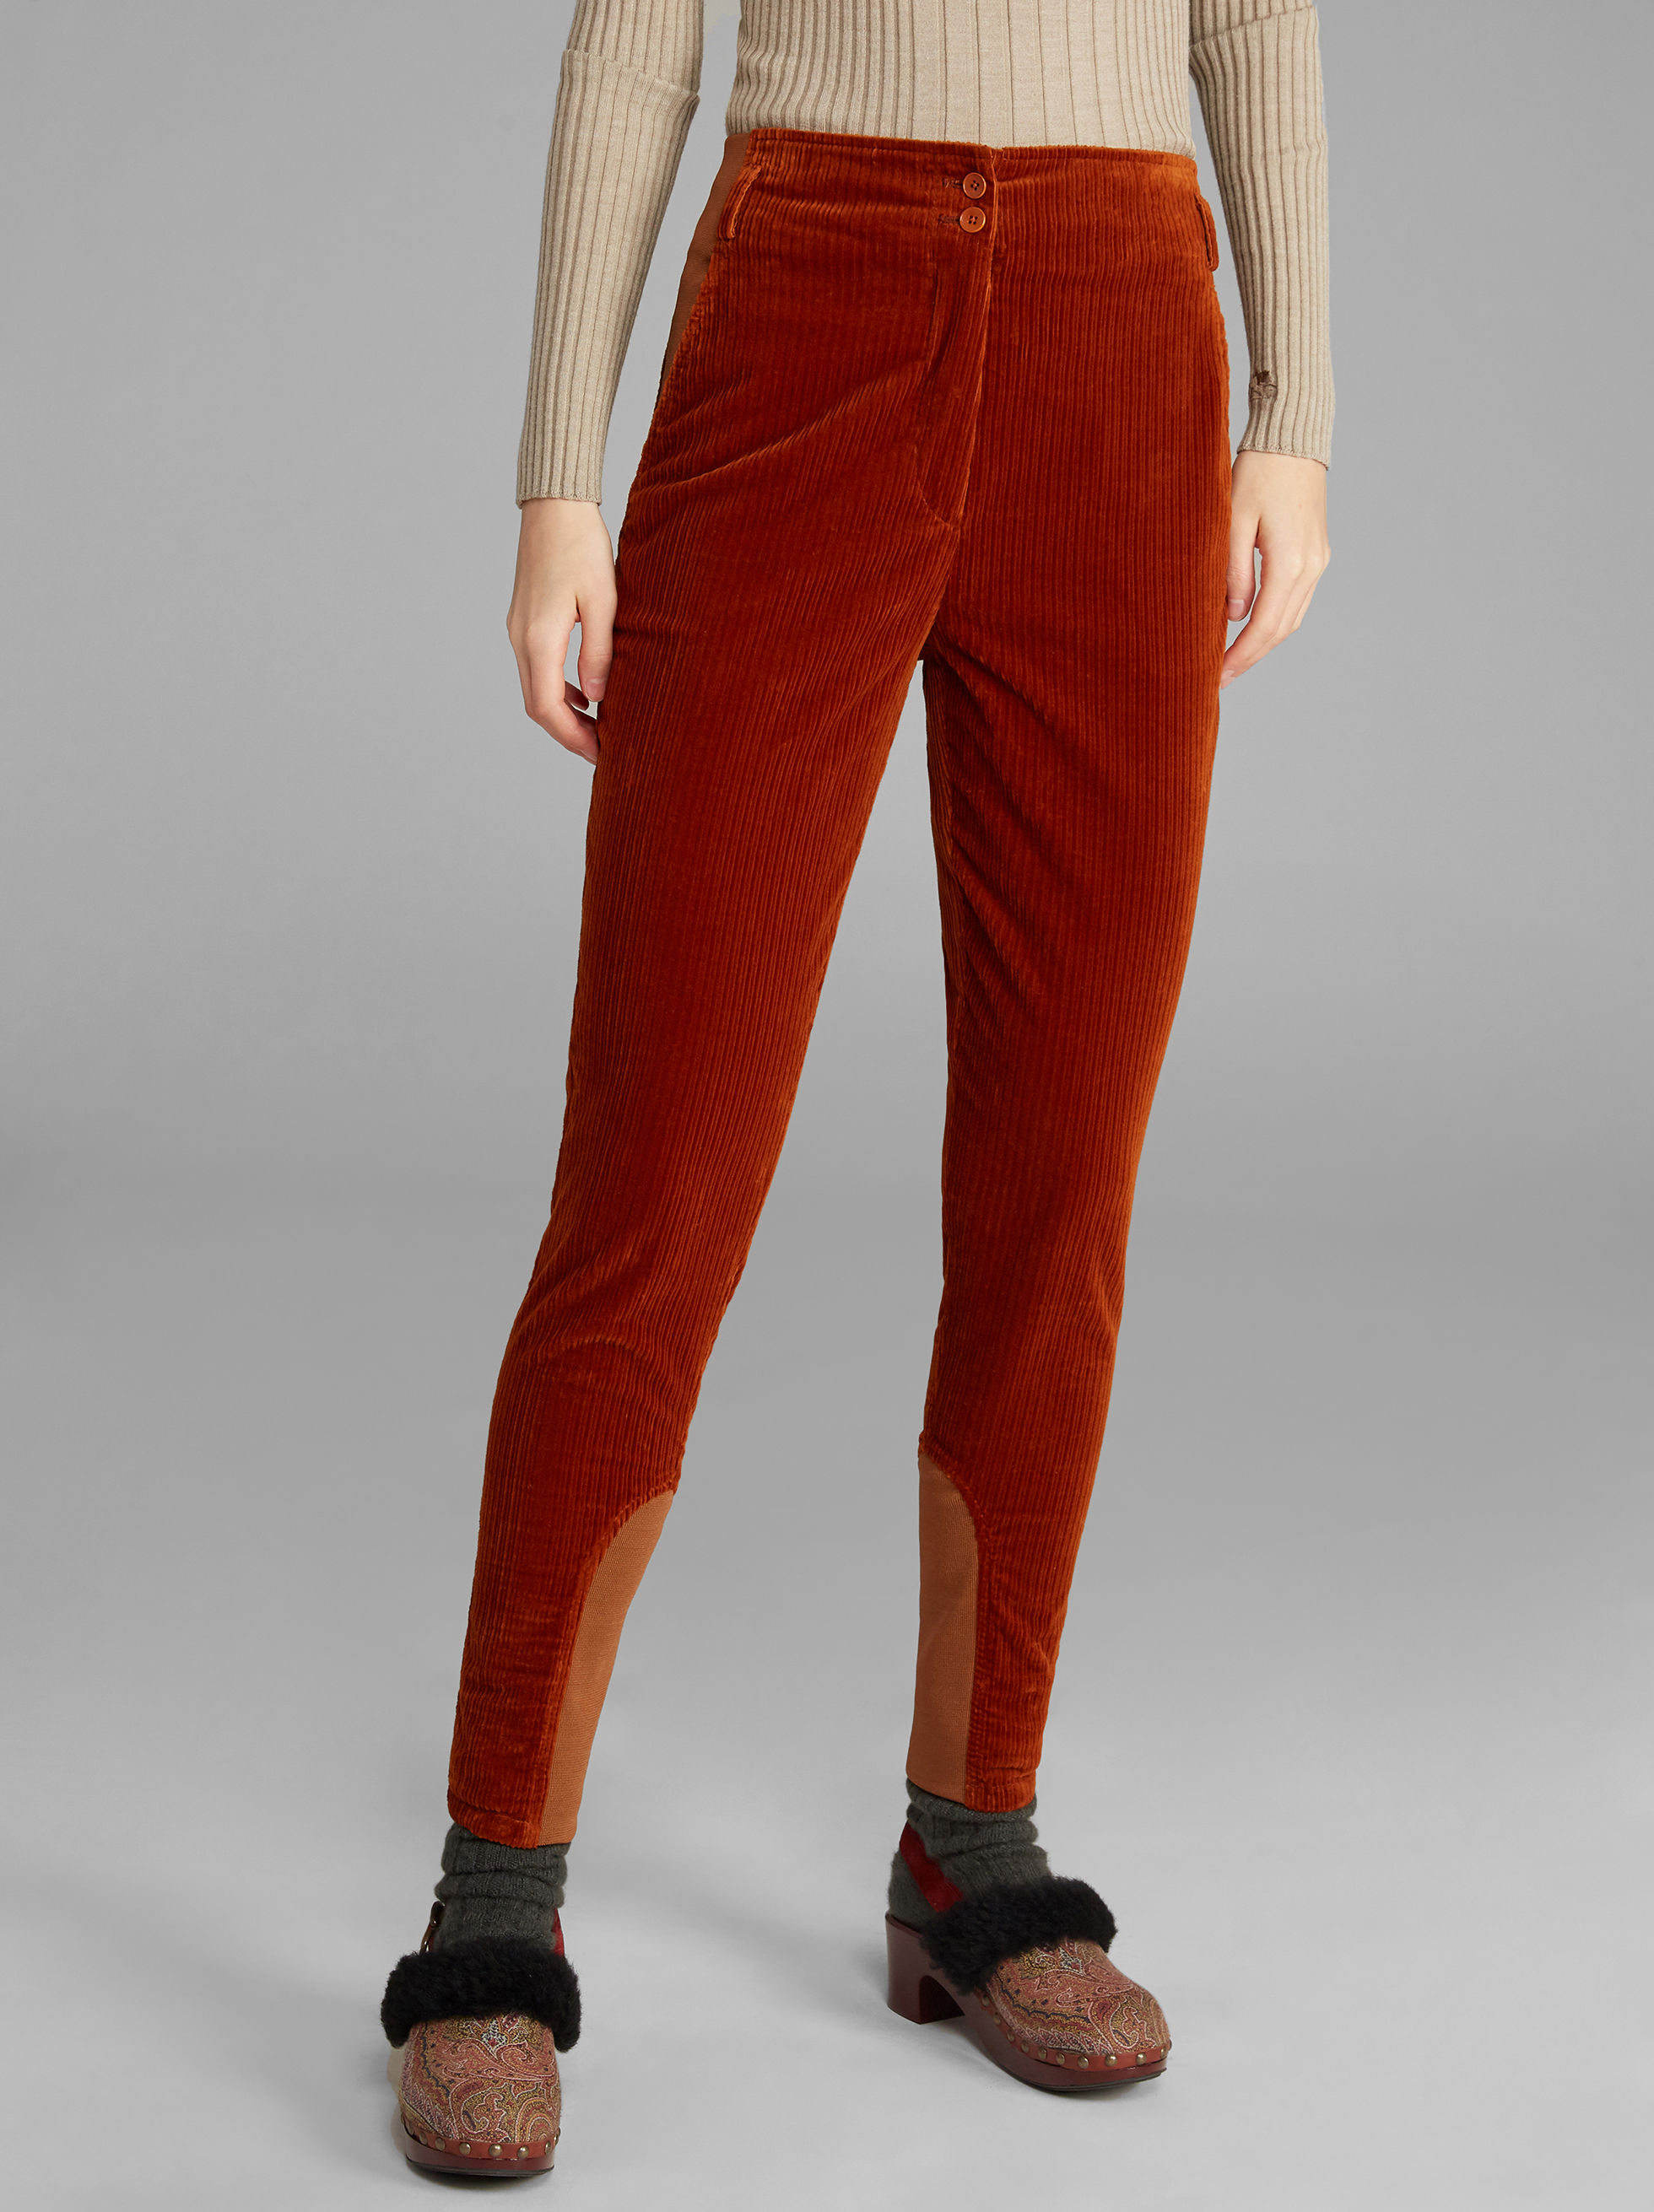 CORDUROY VELVET STRETCH TROUSERS